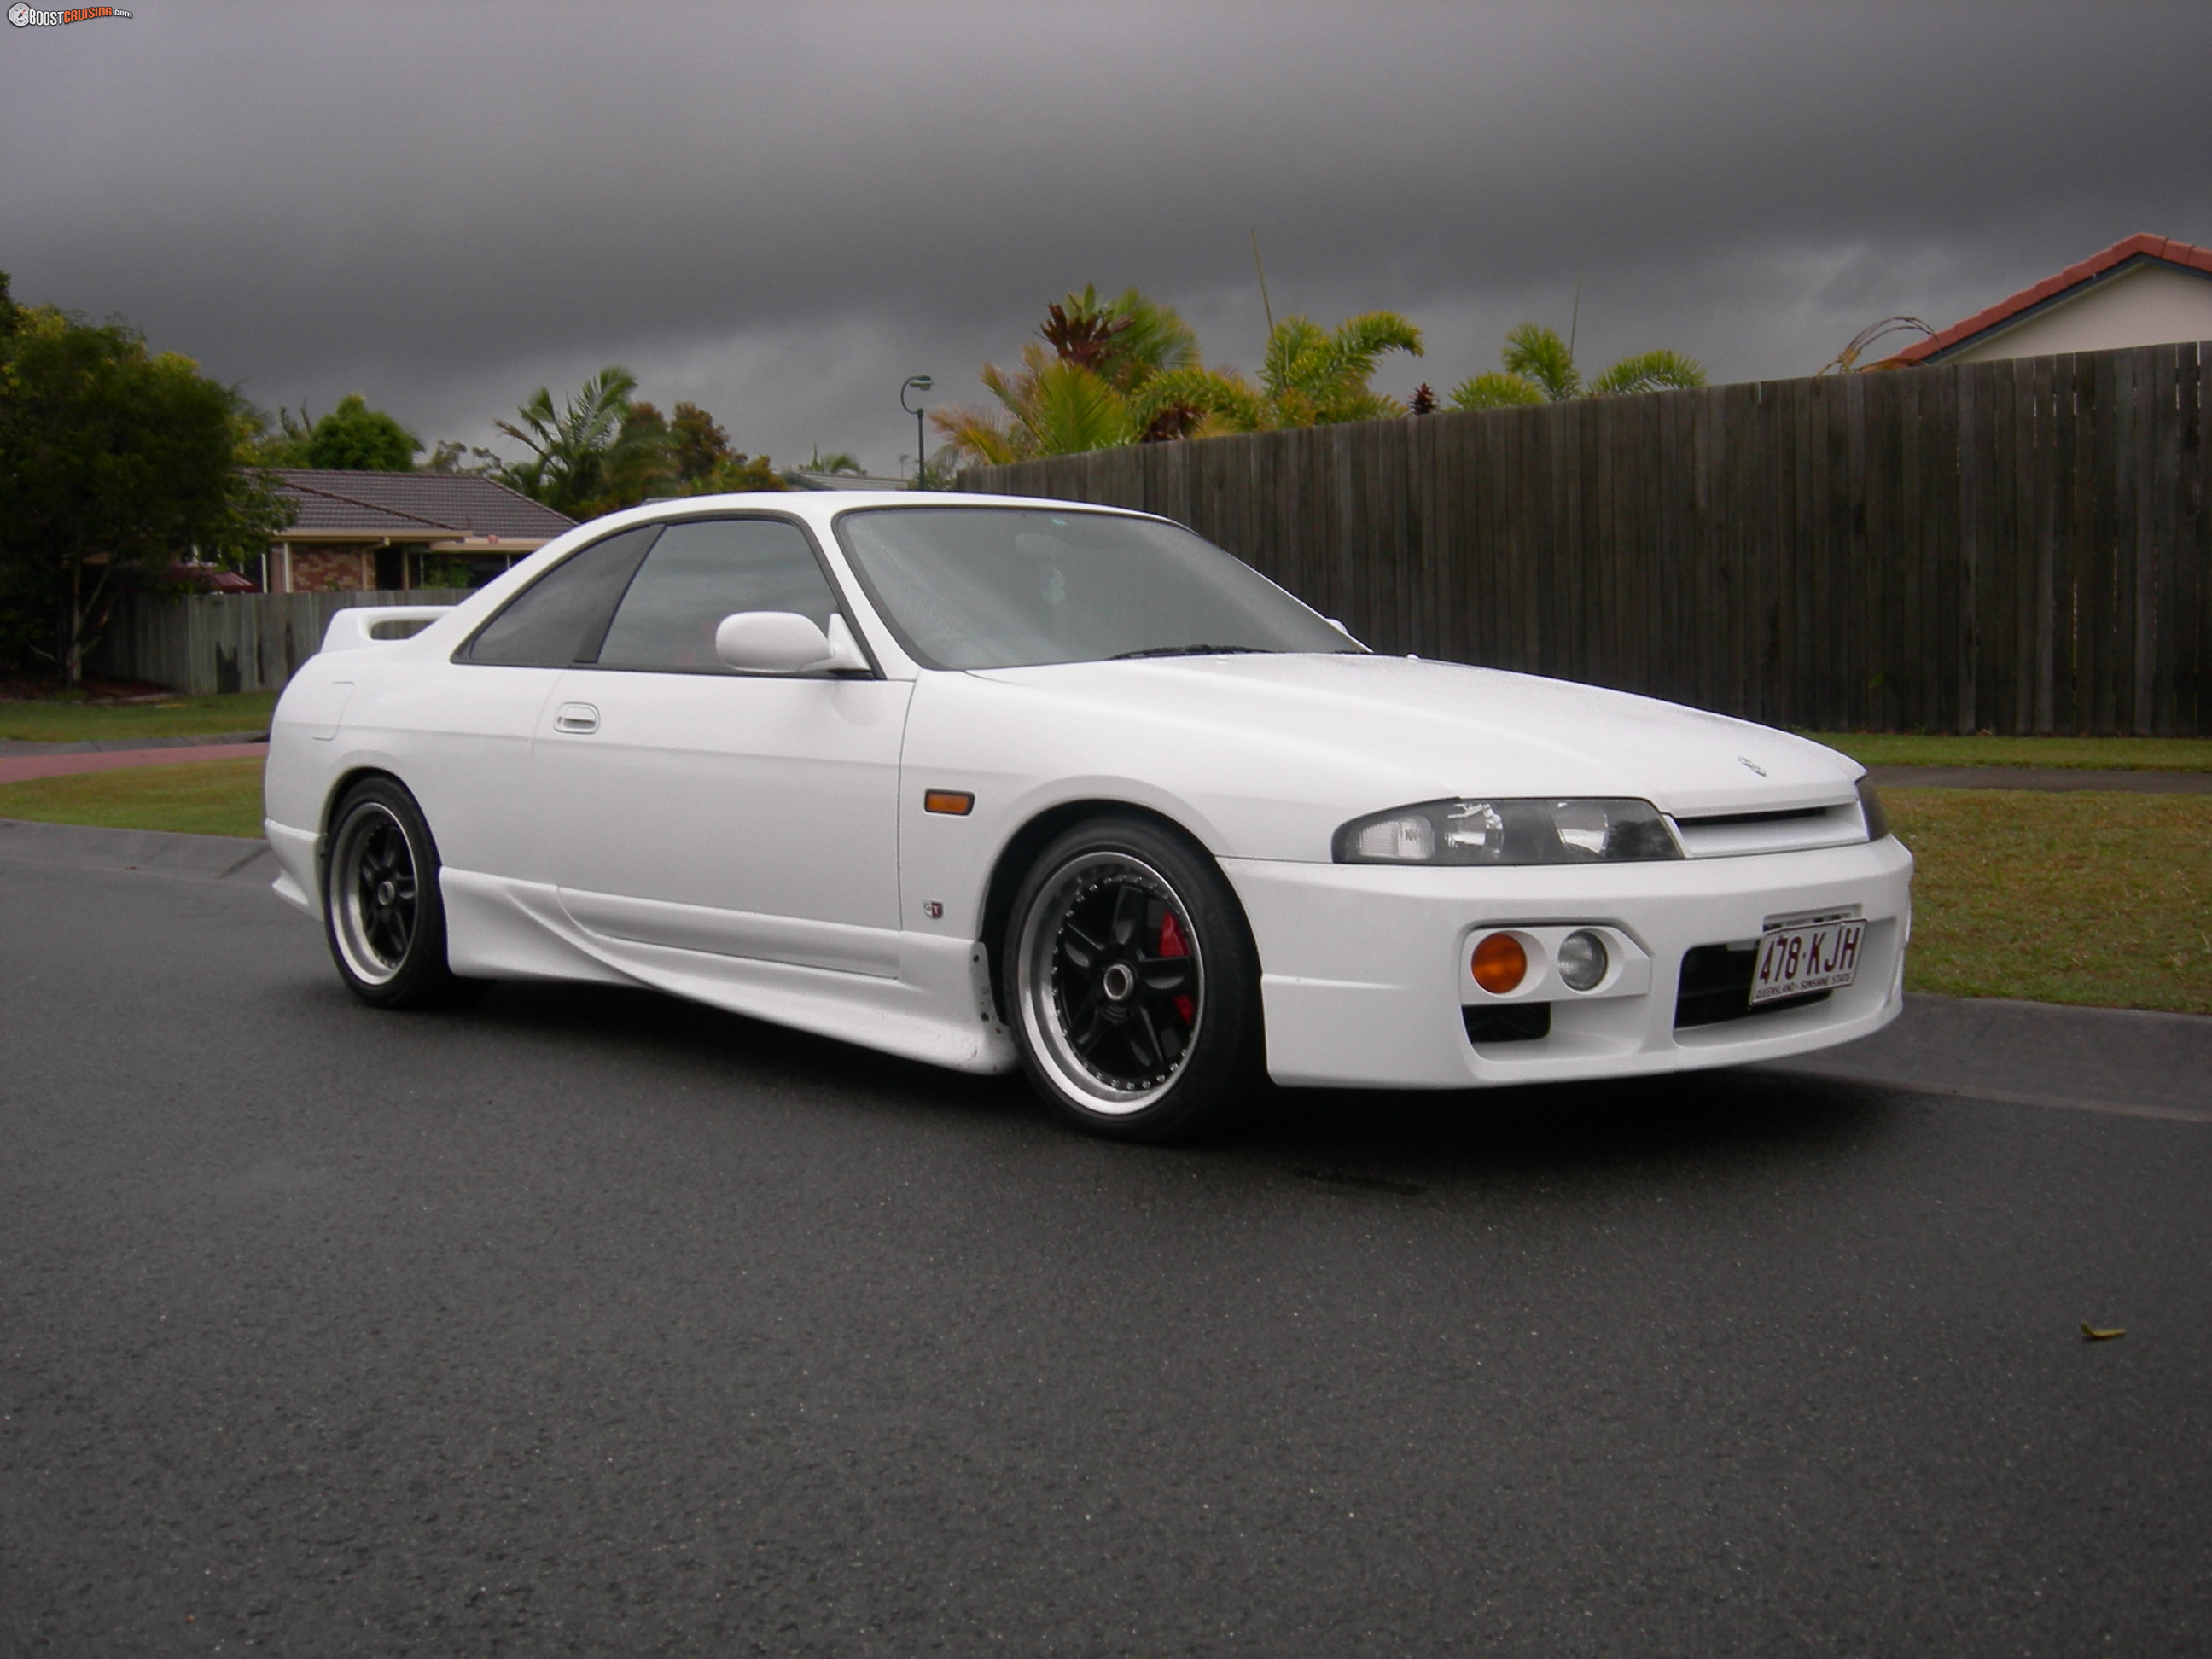 1997 nissan skyline r33 boostcruising. Black Bedroom Furniture Sets. Home Design Ideas